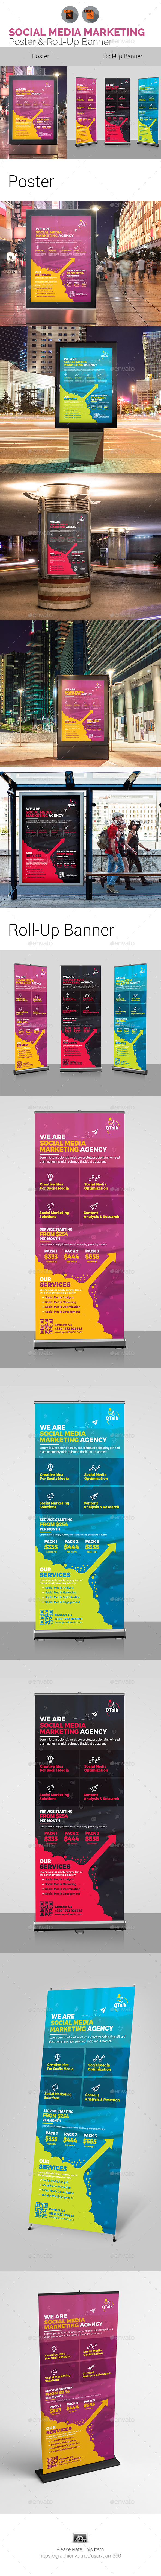 Social Media Marketing Signage Bundle - Signage Print Templates